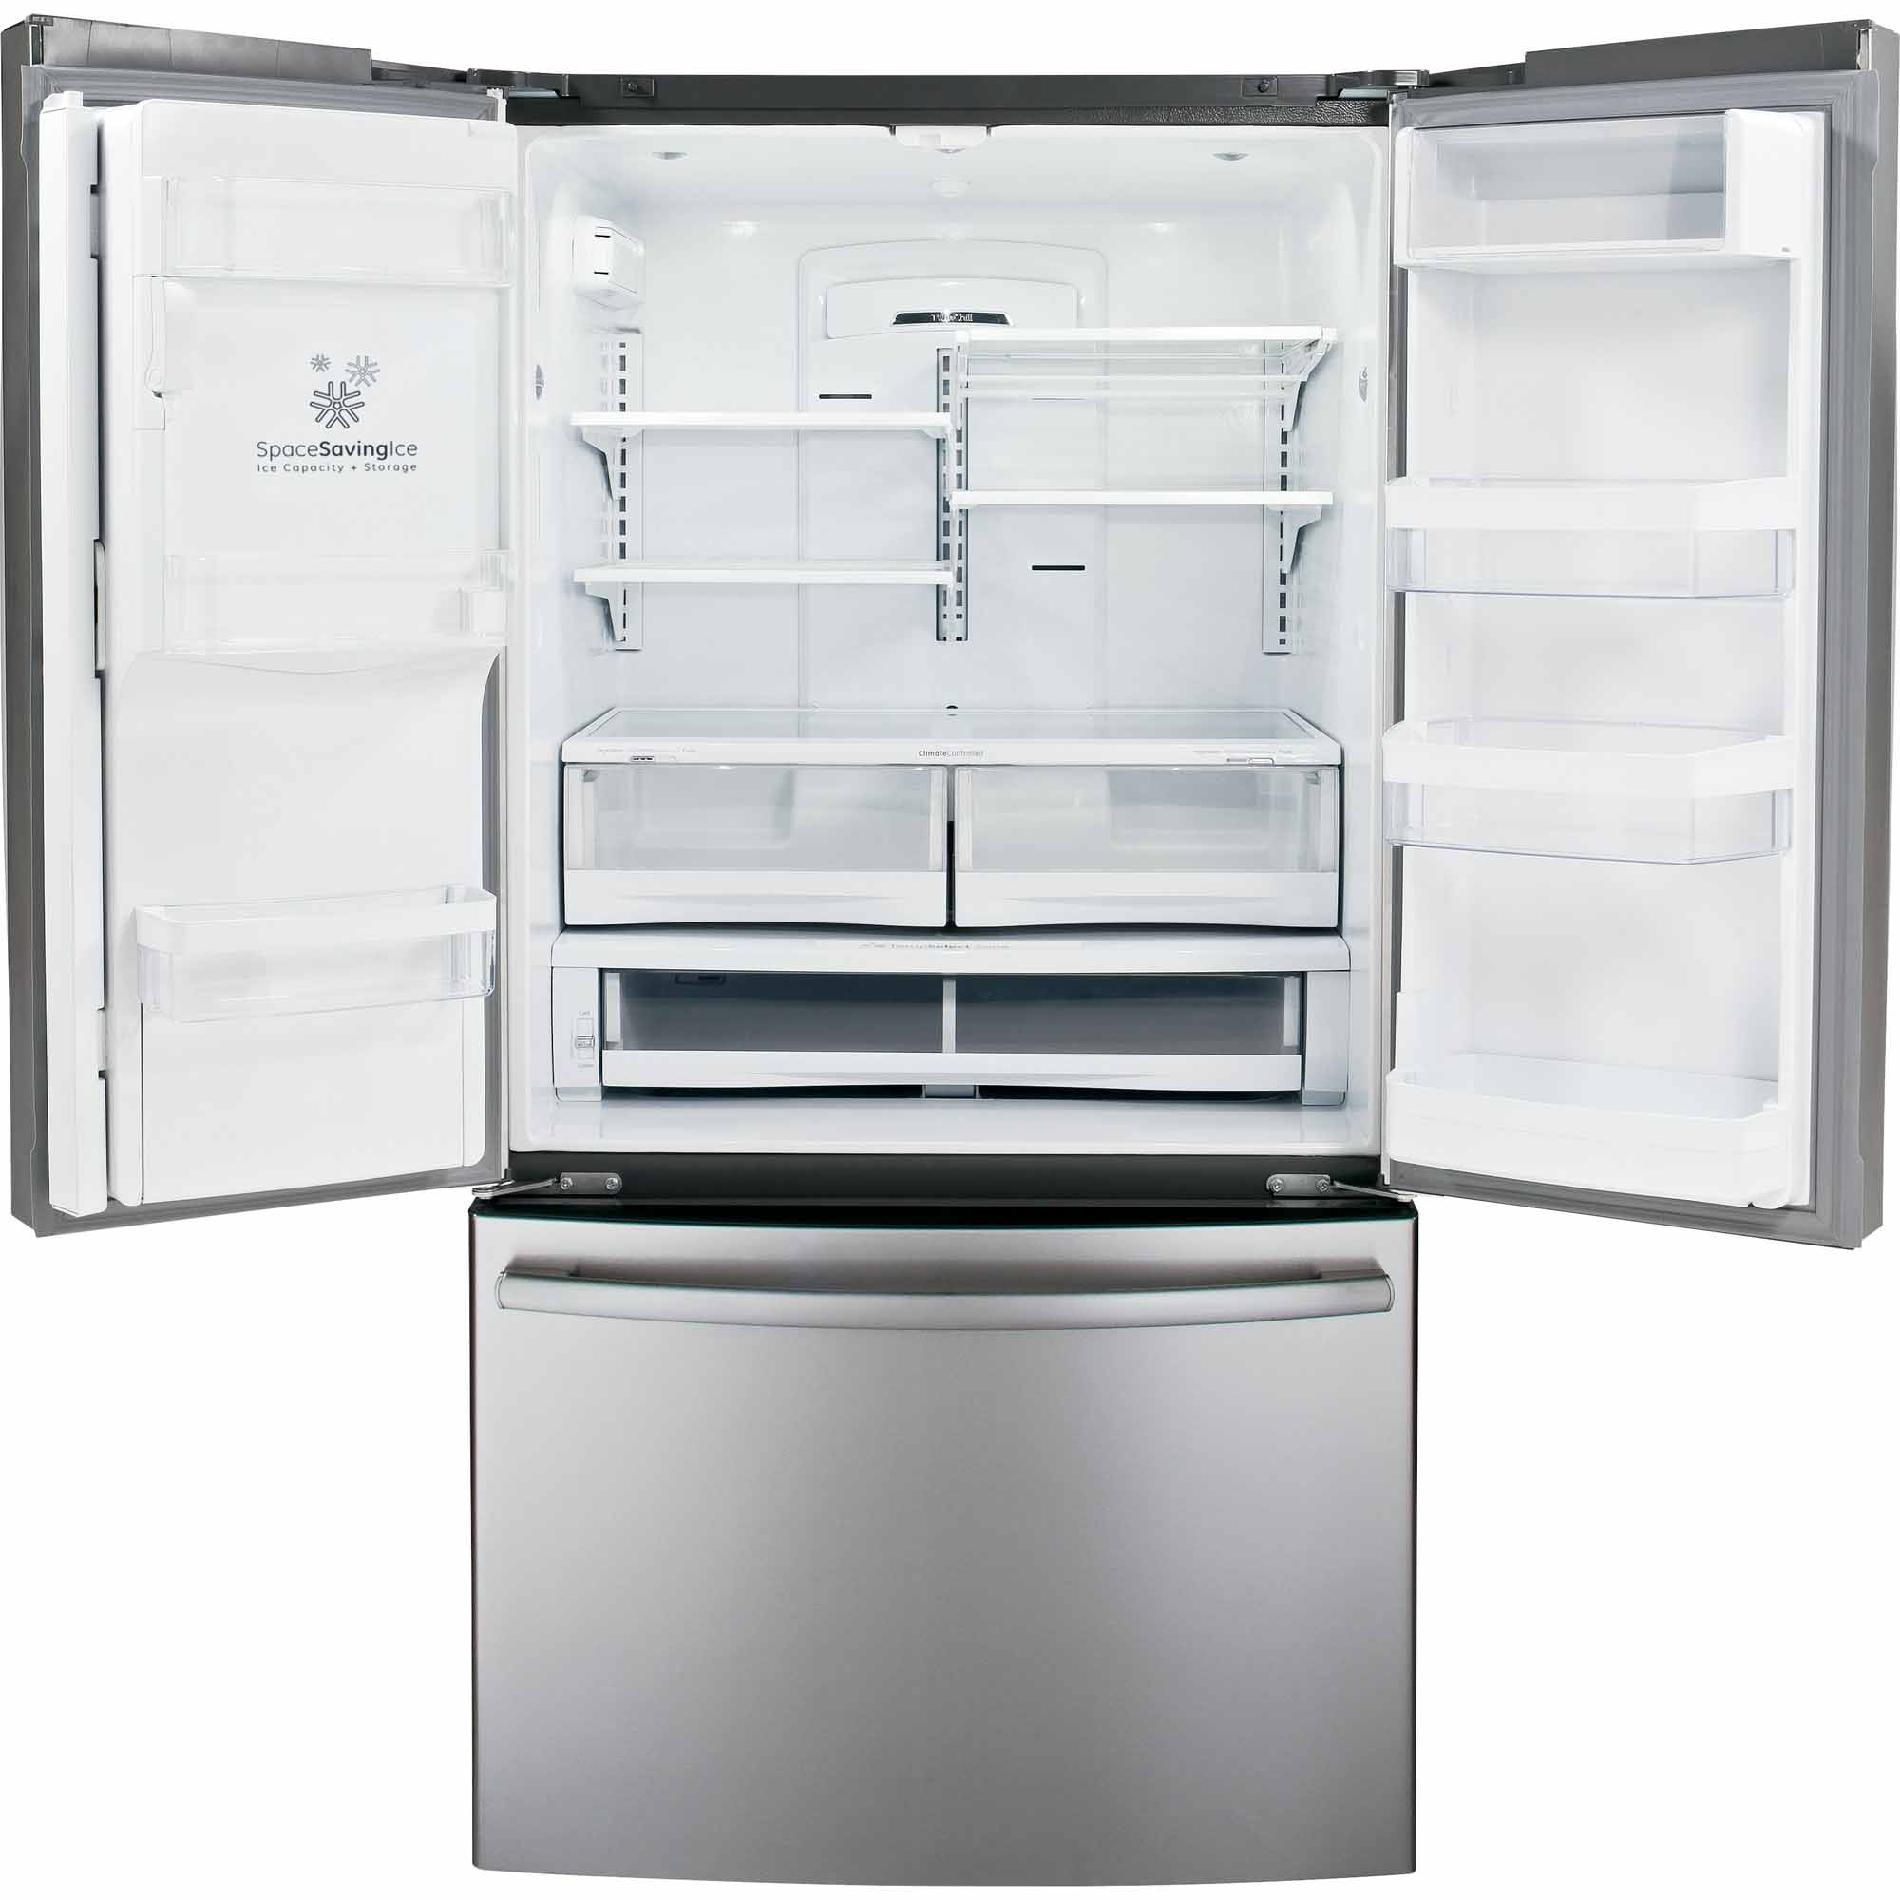 GE 28.6 cu. ft. French Door Refrigerators - Stainless Steel